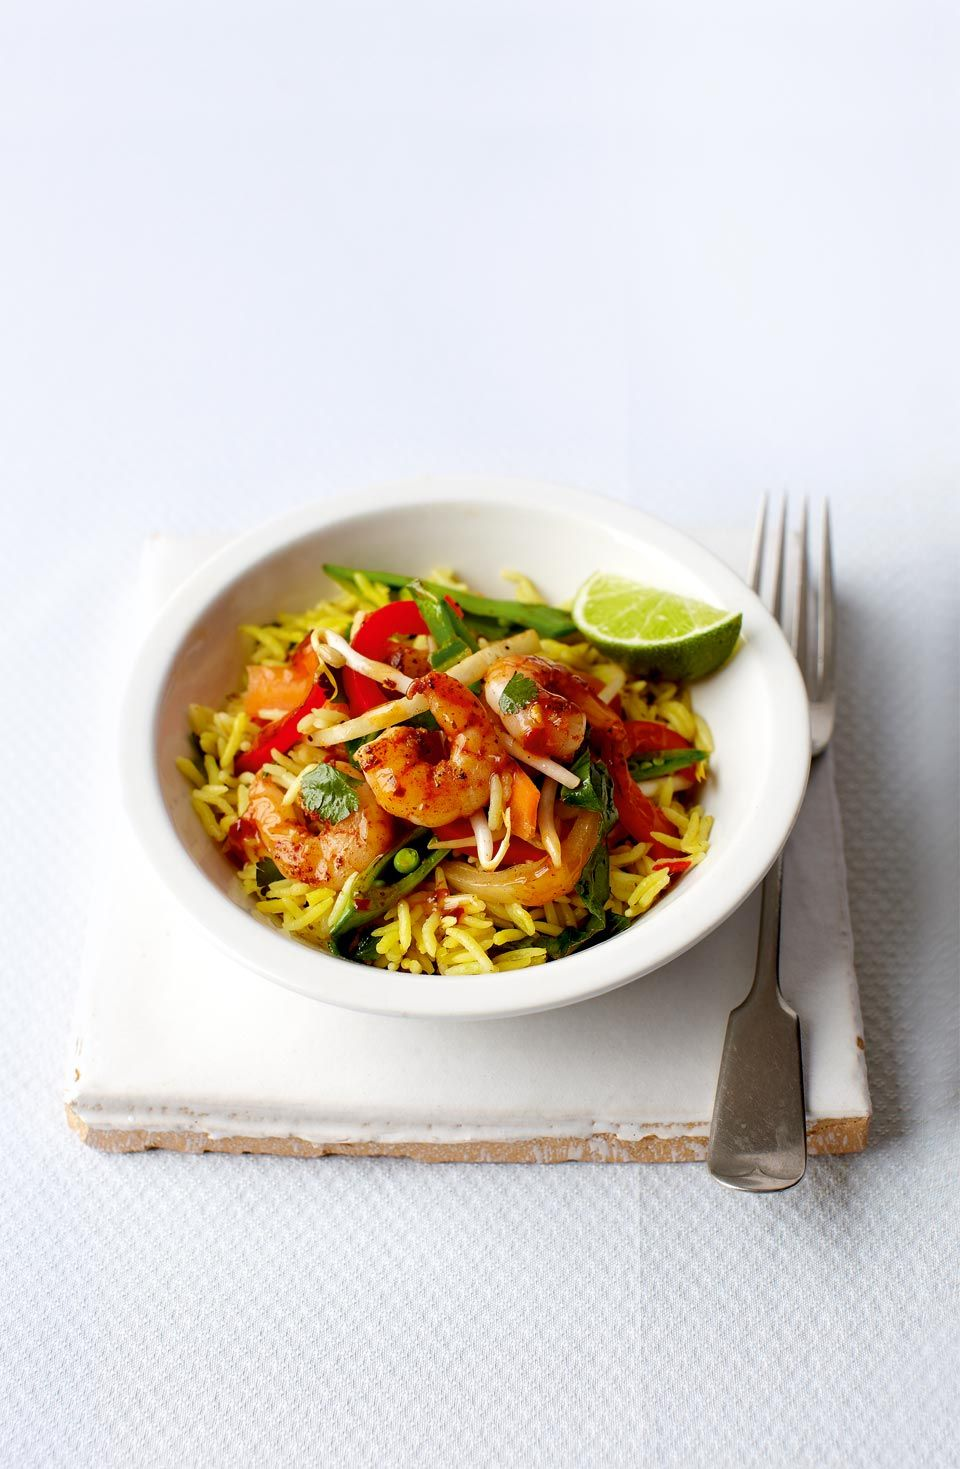 Cheats thai prawn stir fry recipe rump steak this super quick stir fry recipe works really well with strips of rump steak thai food forumfinder Image collections